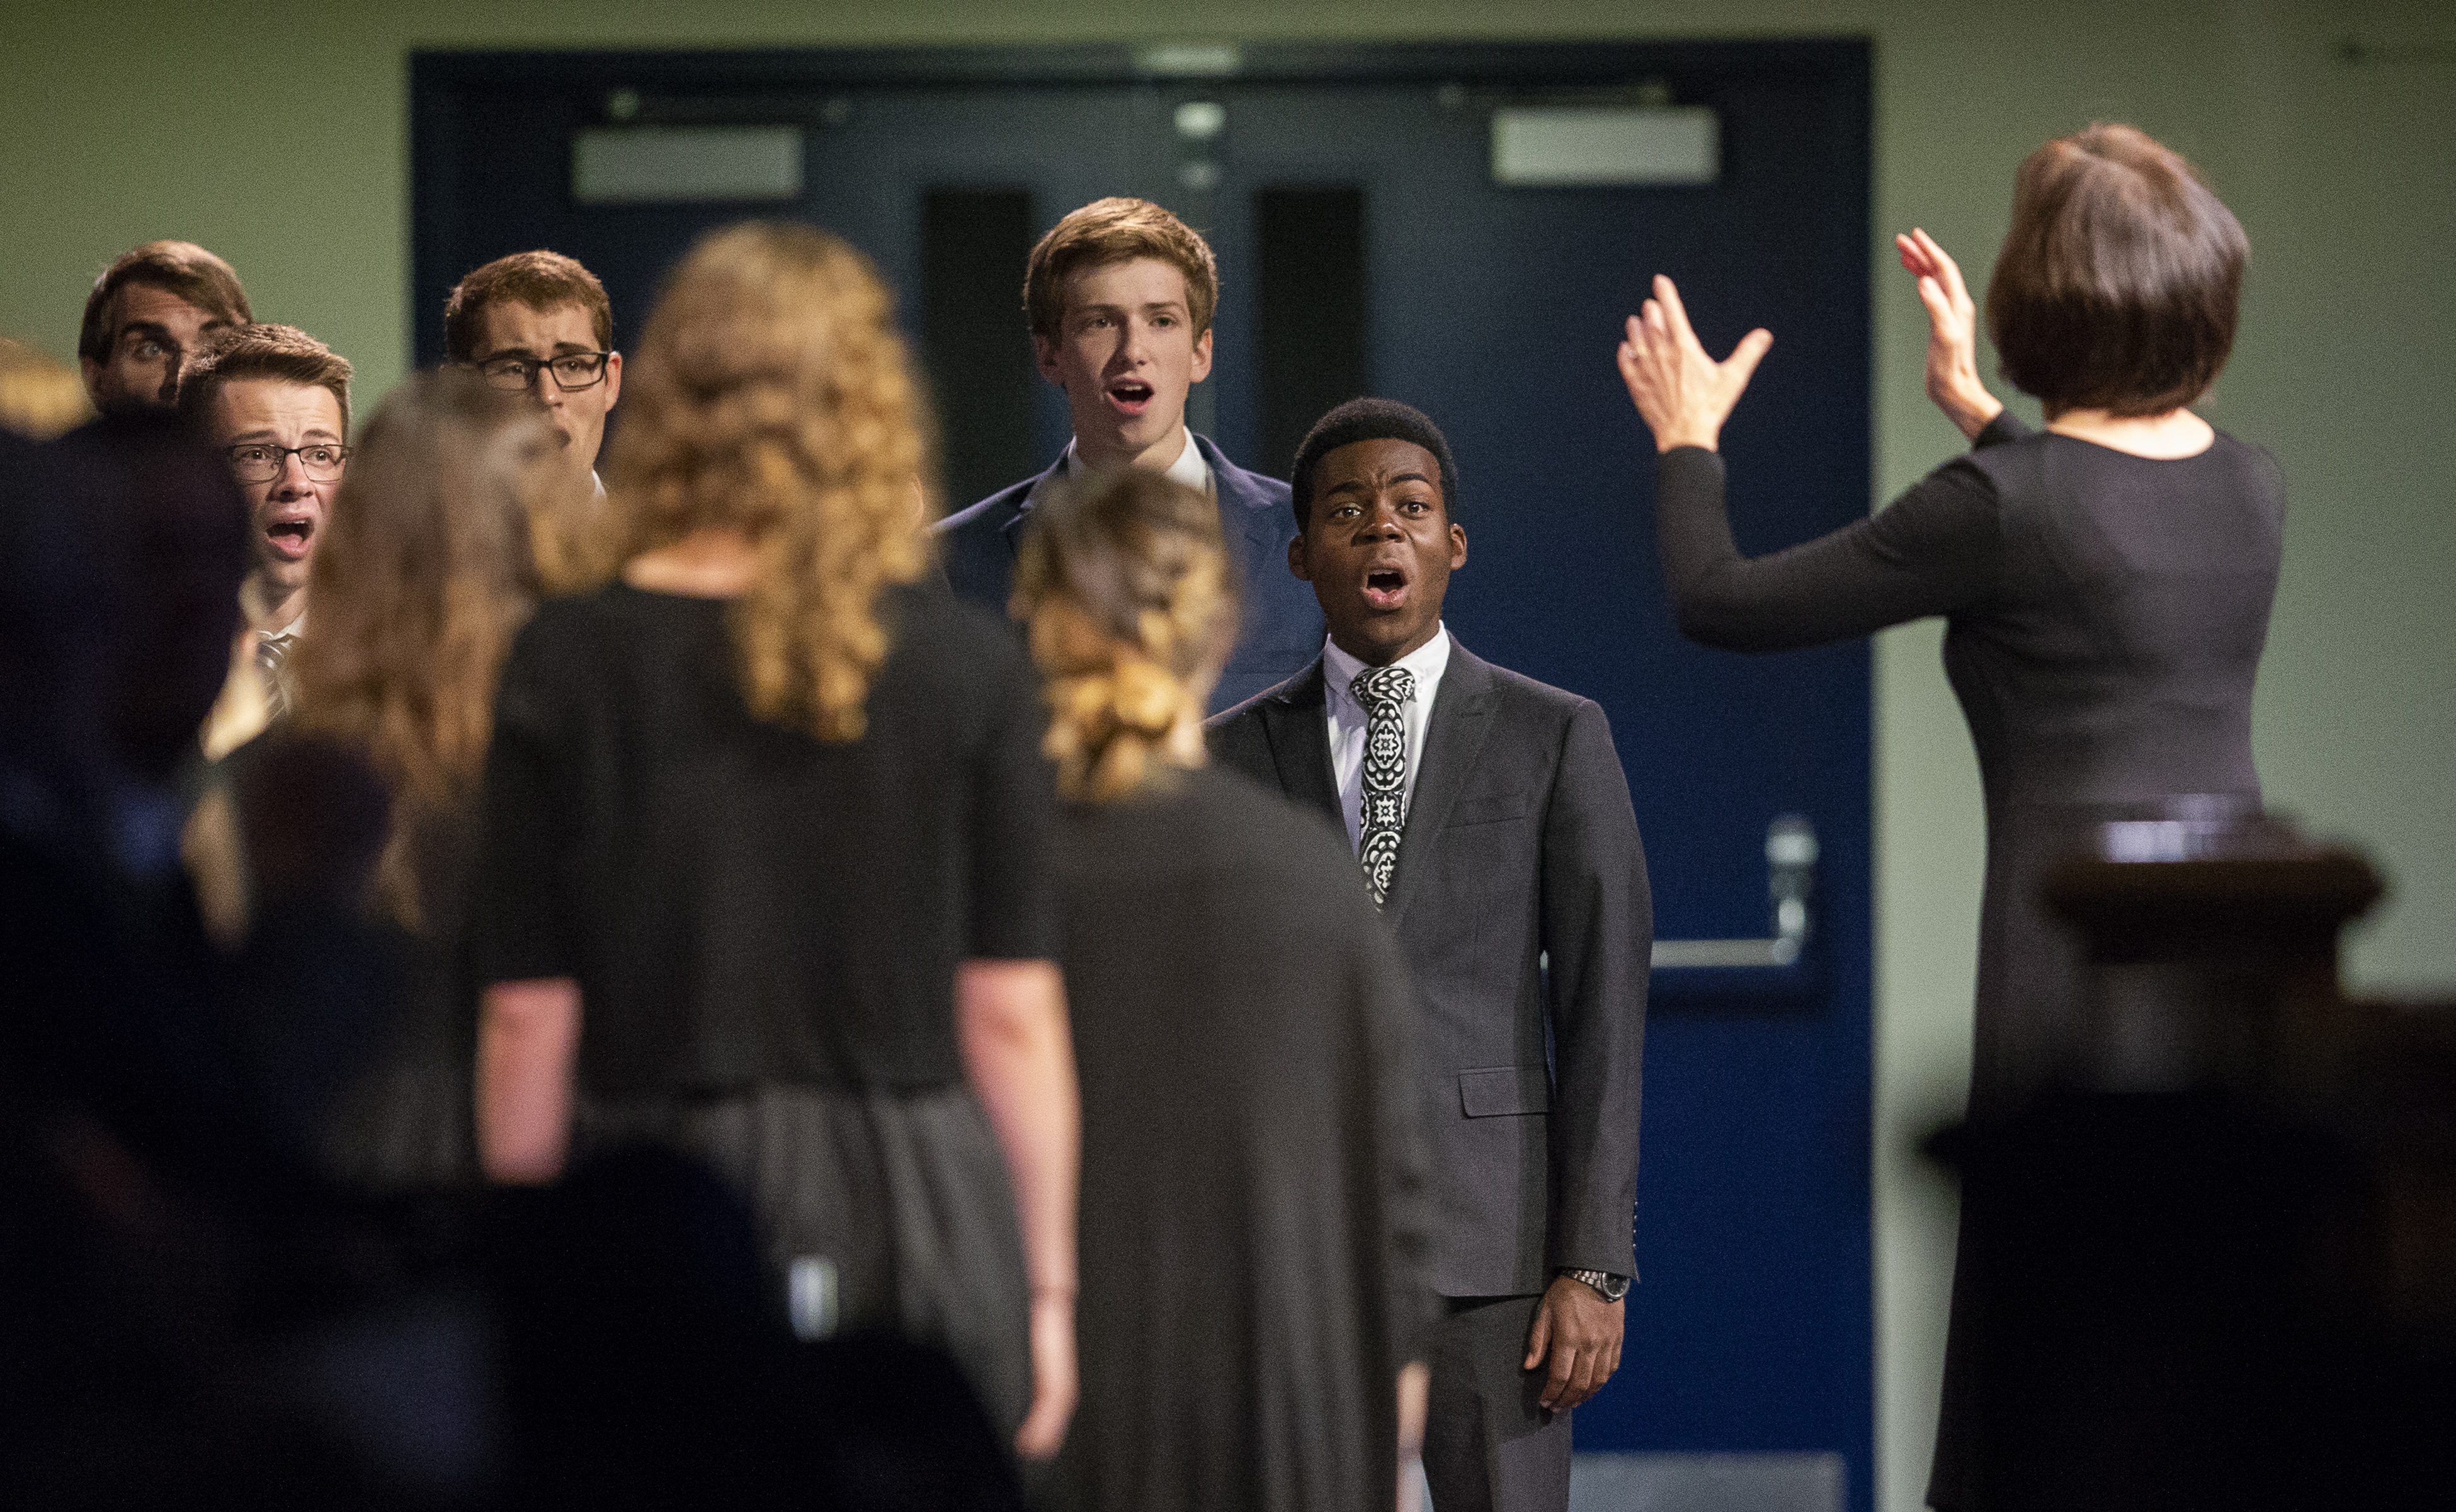 Choir members sing a special musical number prior to Elder Gerrit W. Gong of the Quorum of the Twelve Apostles speaking at a BYU campus devotional on Tuesday, Oct. 16, 2018.